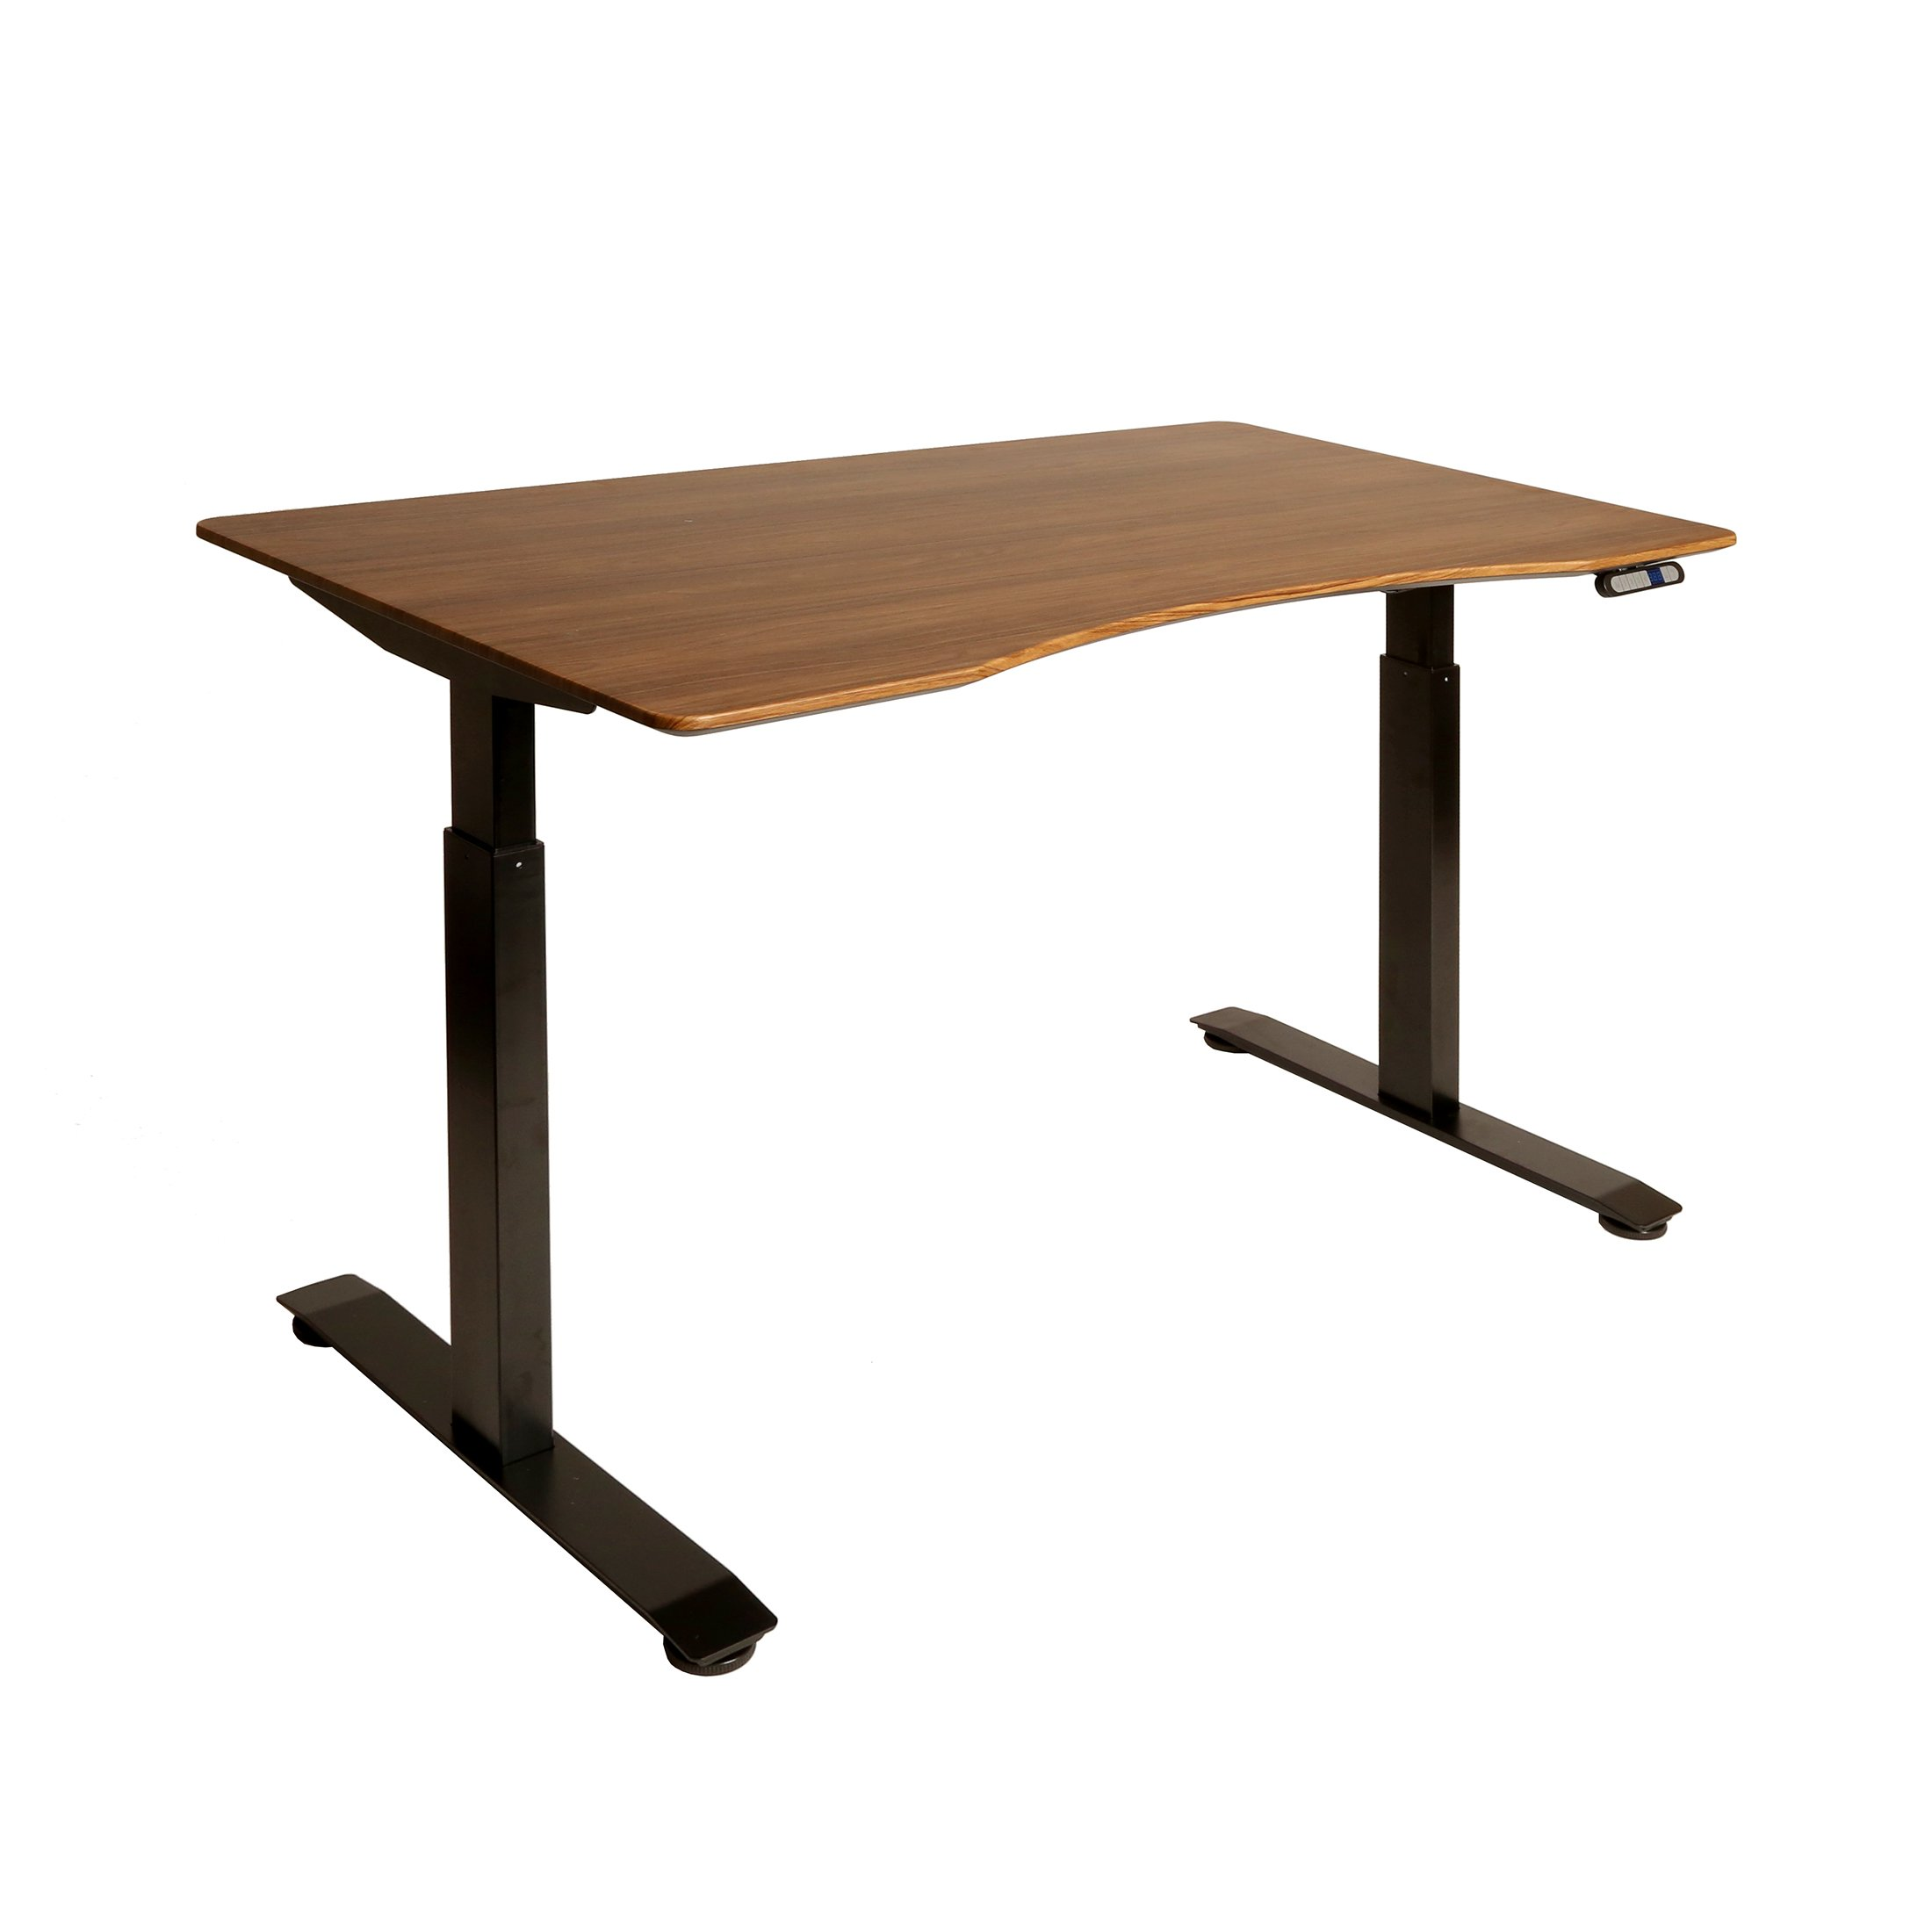 Seville Classics AIRLIFT S2 Electric Standing Desk Frame /w 54'' Top and 4 Memory Buttons LED Height Display (Rises to 48.4'') - 2-Section Base, Dual Motors, Black with Walnut Top